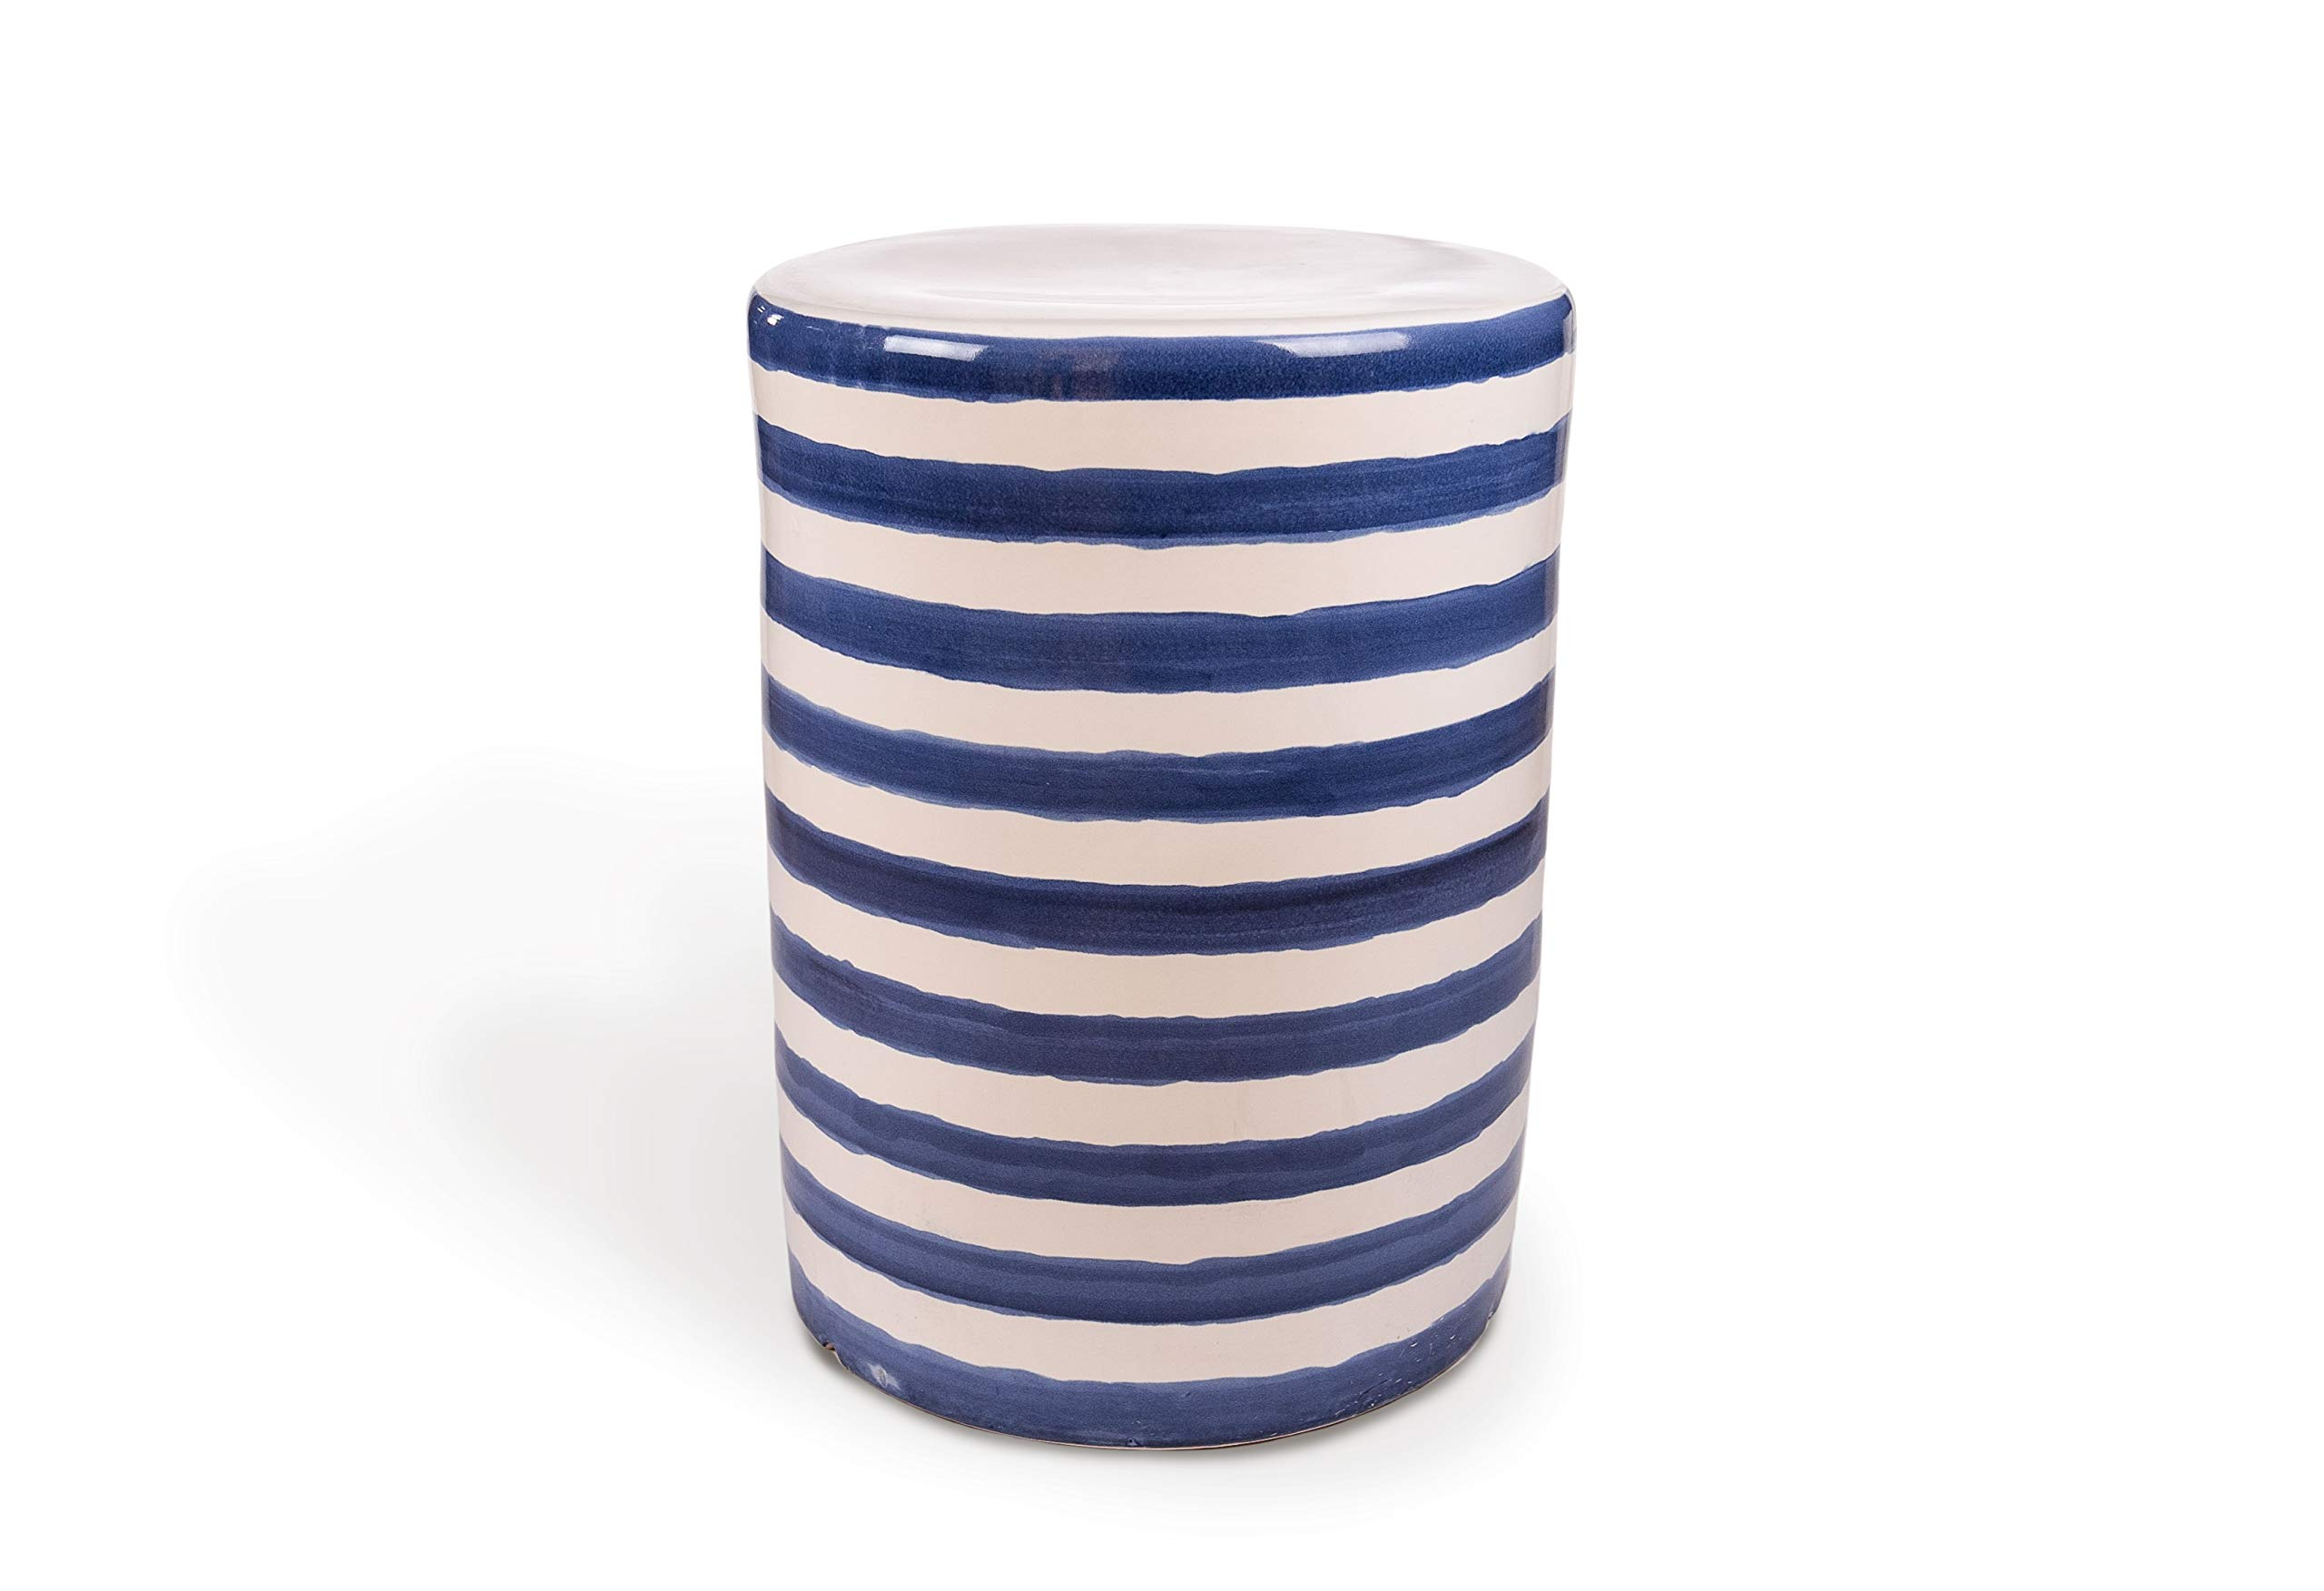 Leisure Made 569004 Clara Ceramic Side Table, One Size Blue and White by Leisure Made